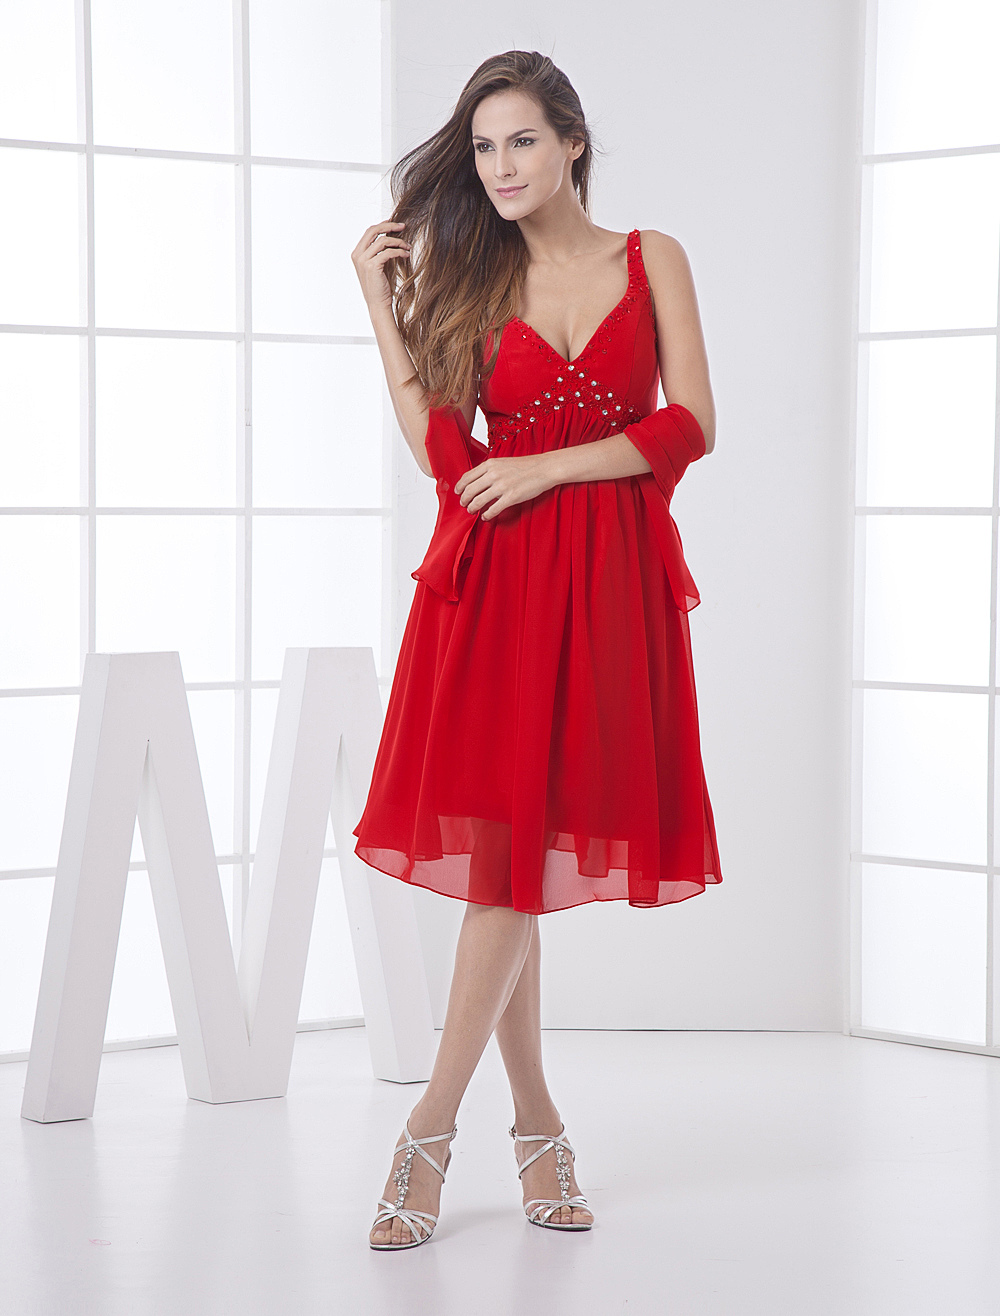 Red Bridesmaid Dress Backless Rhinestone Straps Chiffon Dress